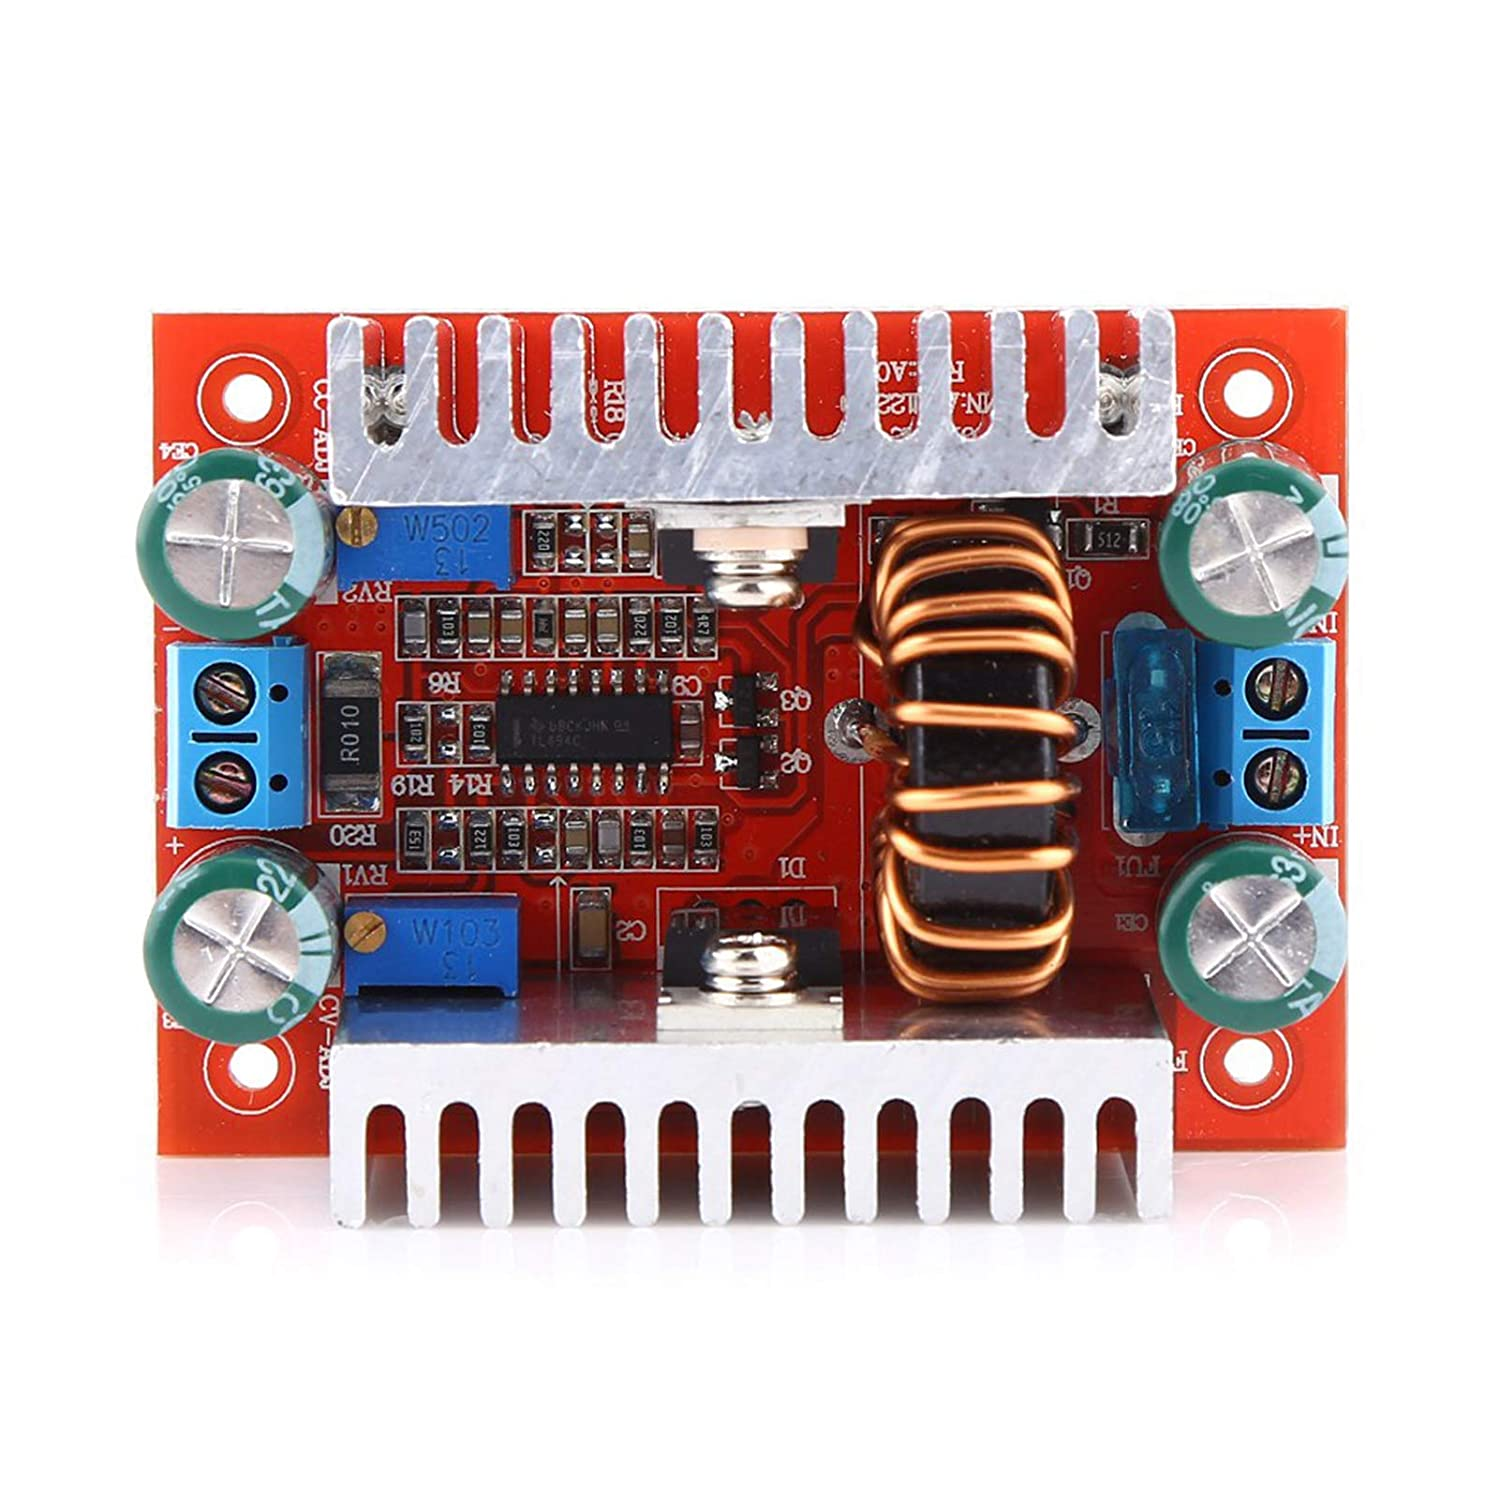 Akozon Boost Module 400W DC-DC Step-up Boost Converter Constant Current Power Supply Module LED Driver